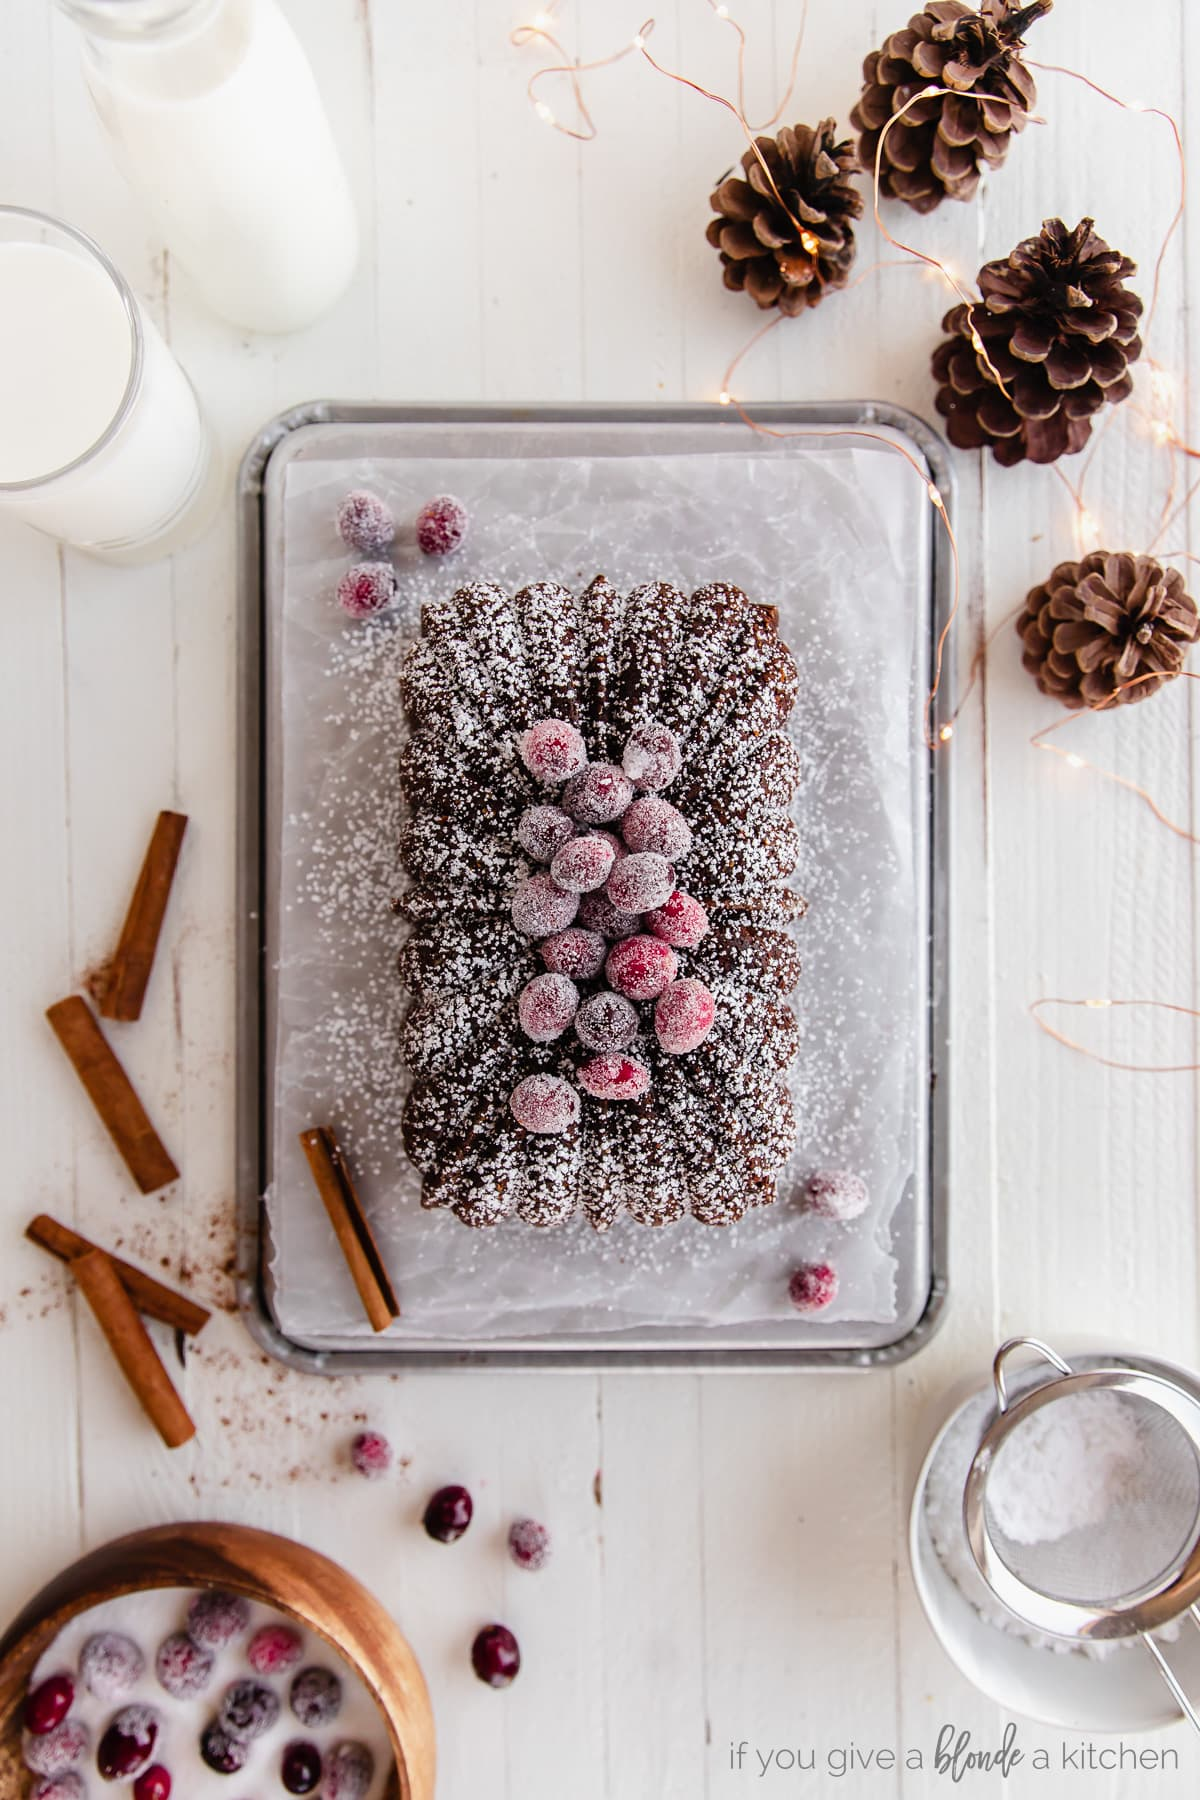 gingerbread loaf dusted with confectioners sugar and topped with sugared cranberries on baking sheet